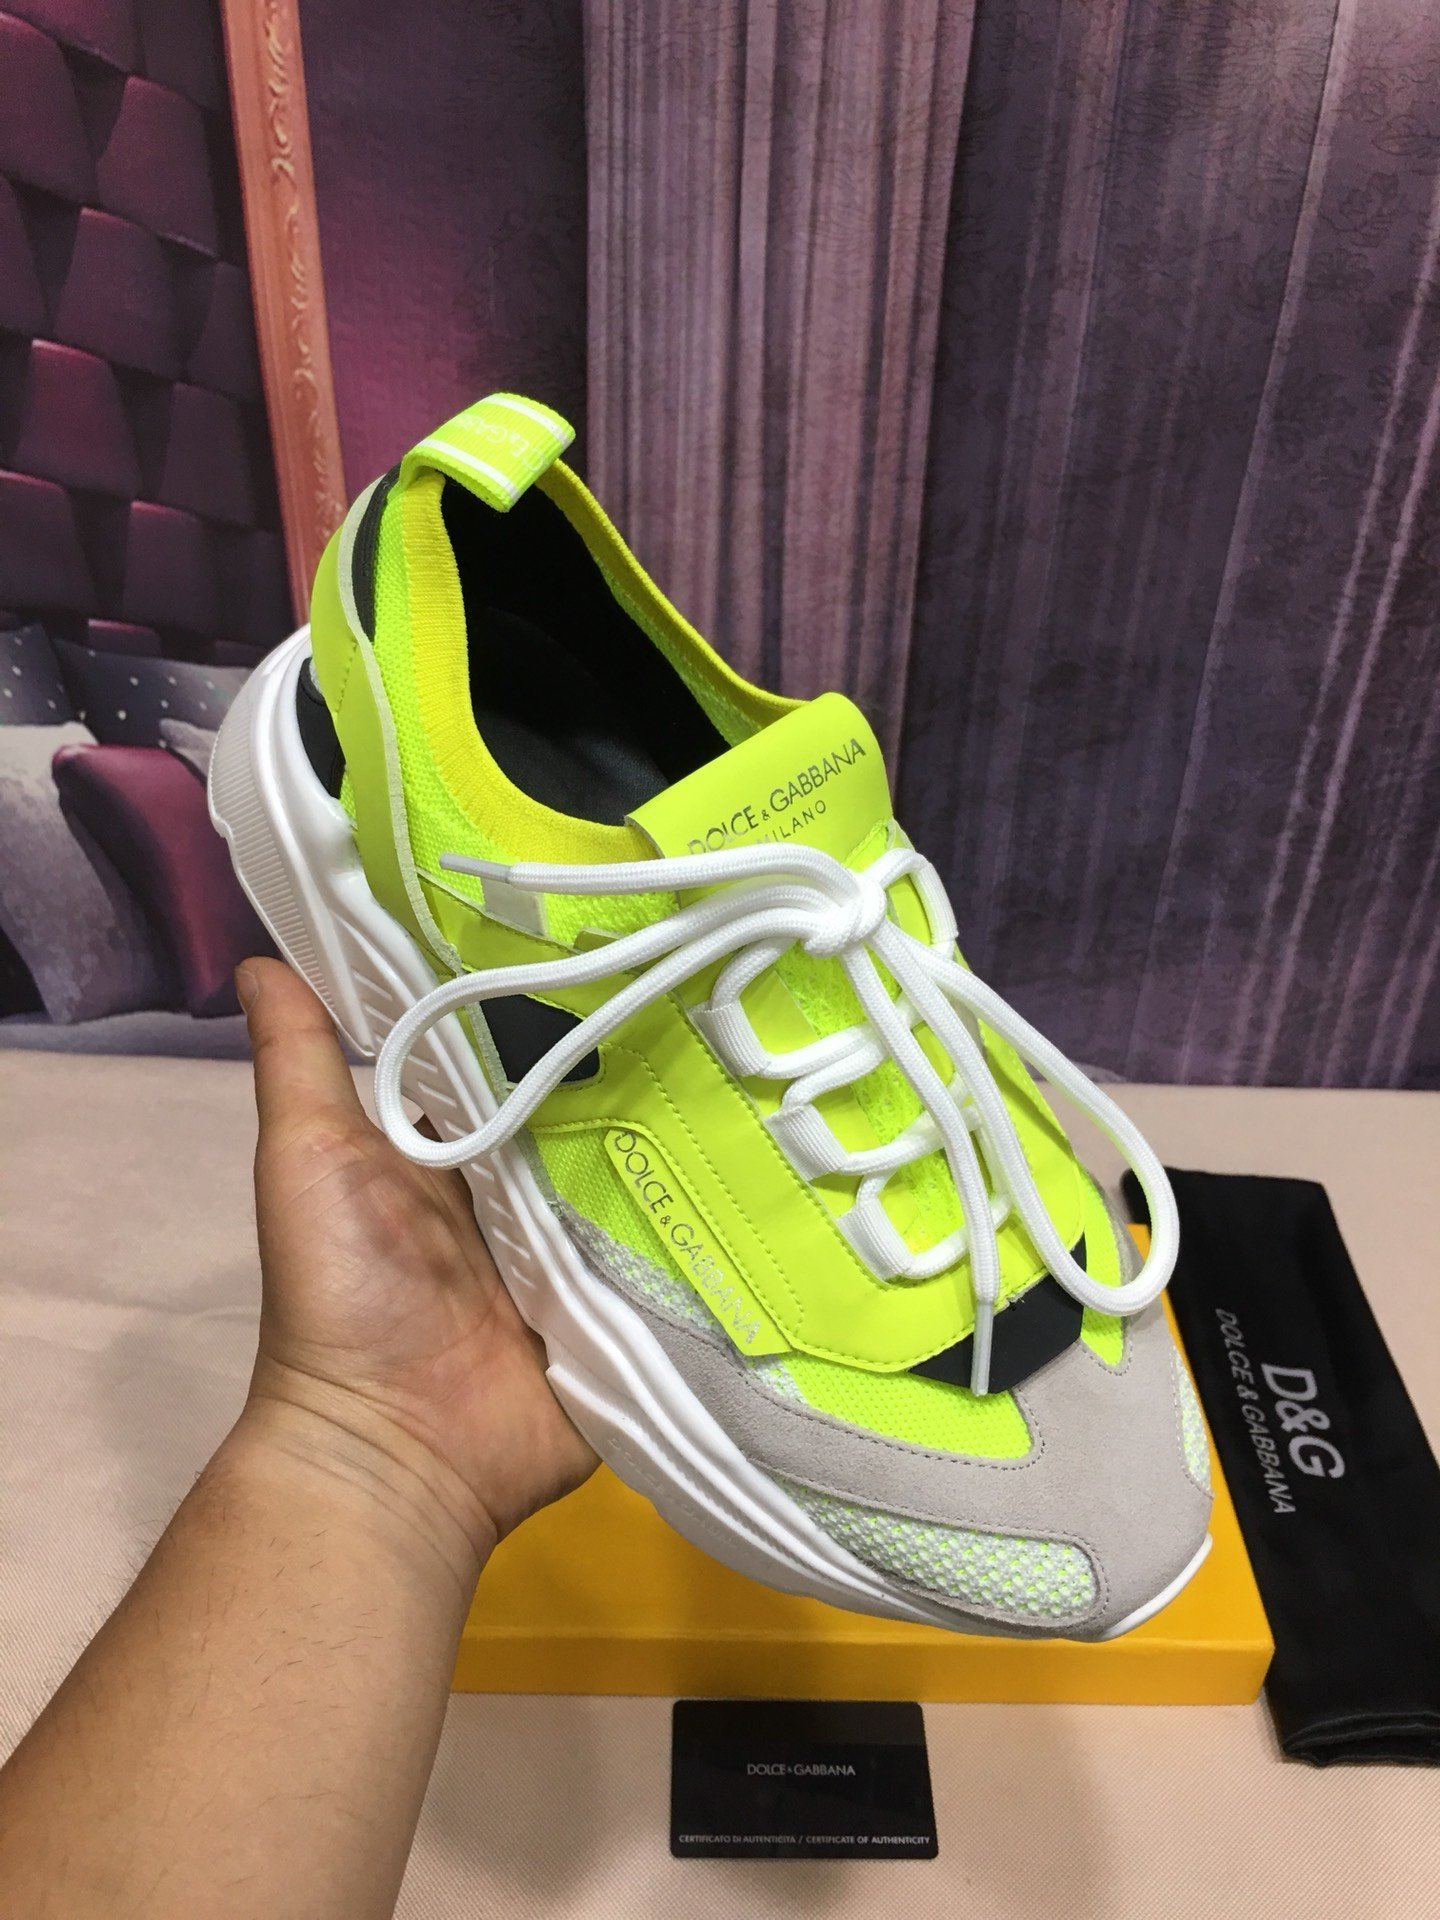 Image of D&G Fashion Men Women's Casual Running Sport Shoes Sneakers Slipper Sandals High Heels Shoes